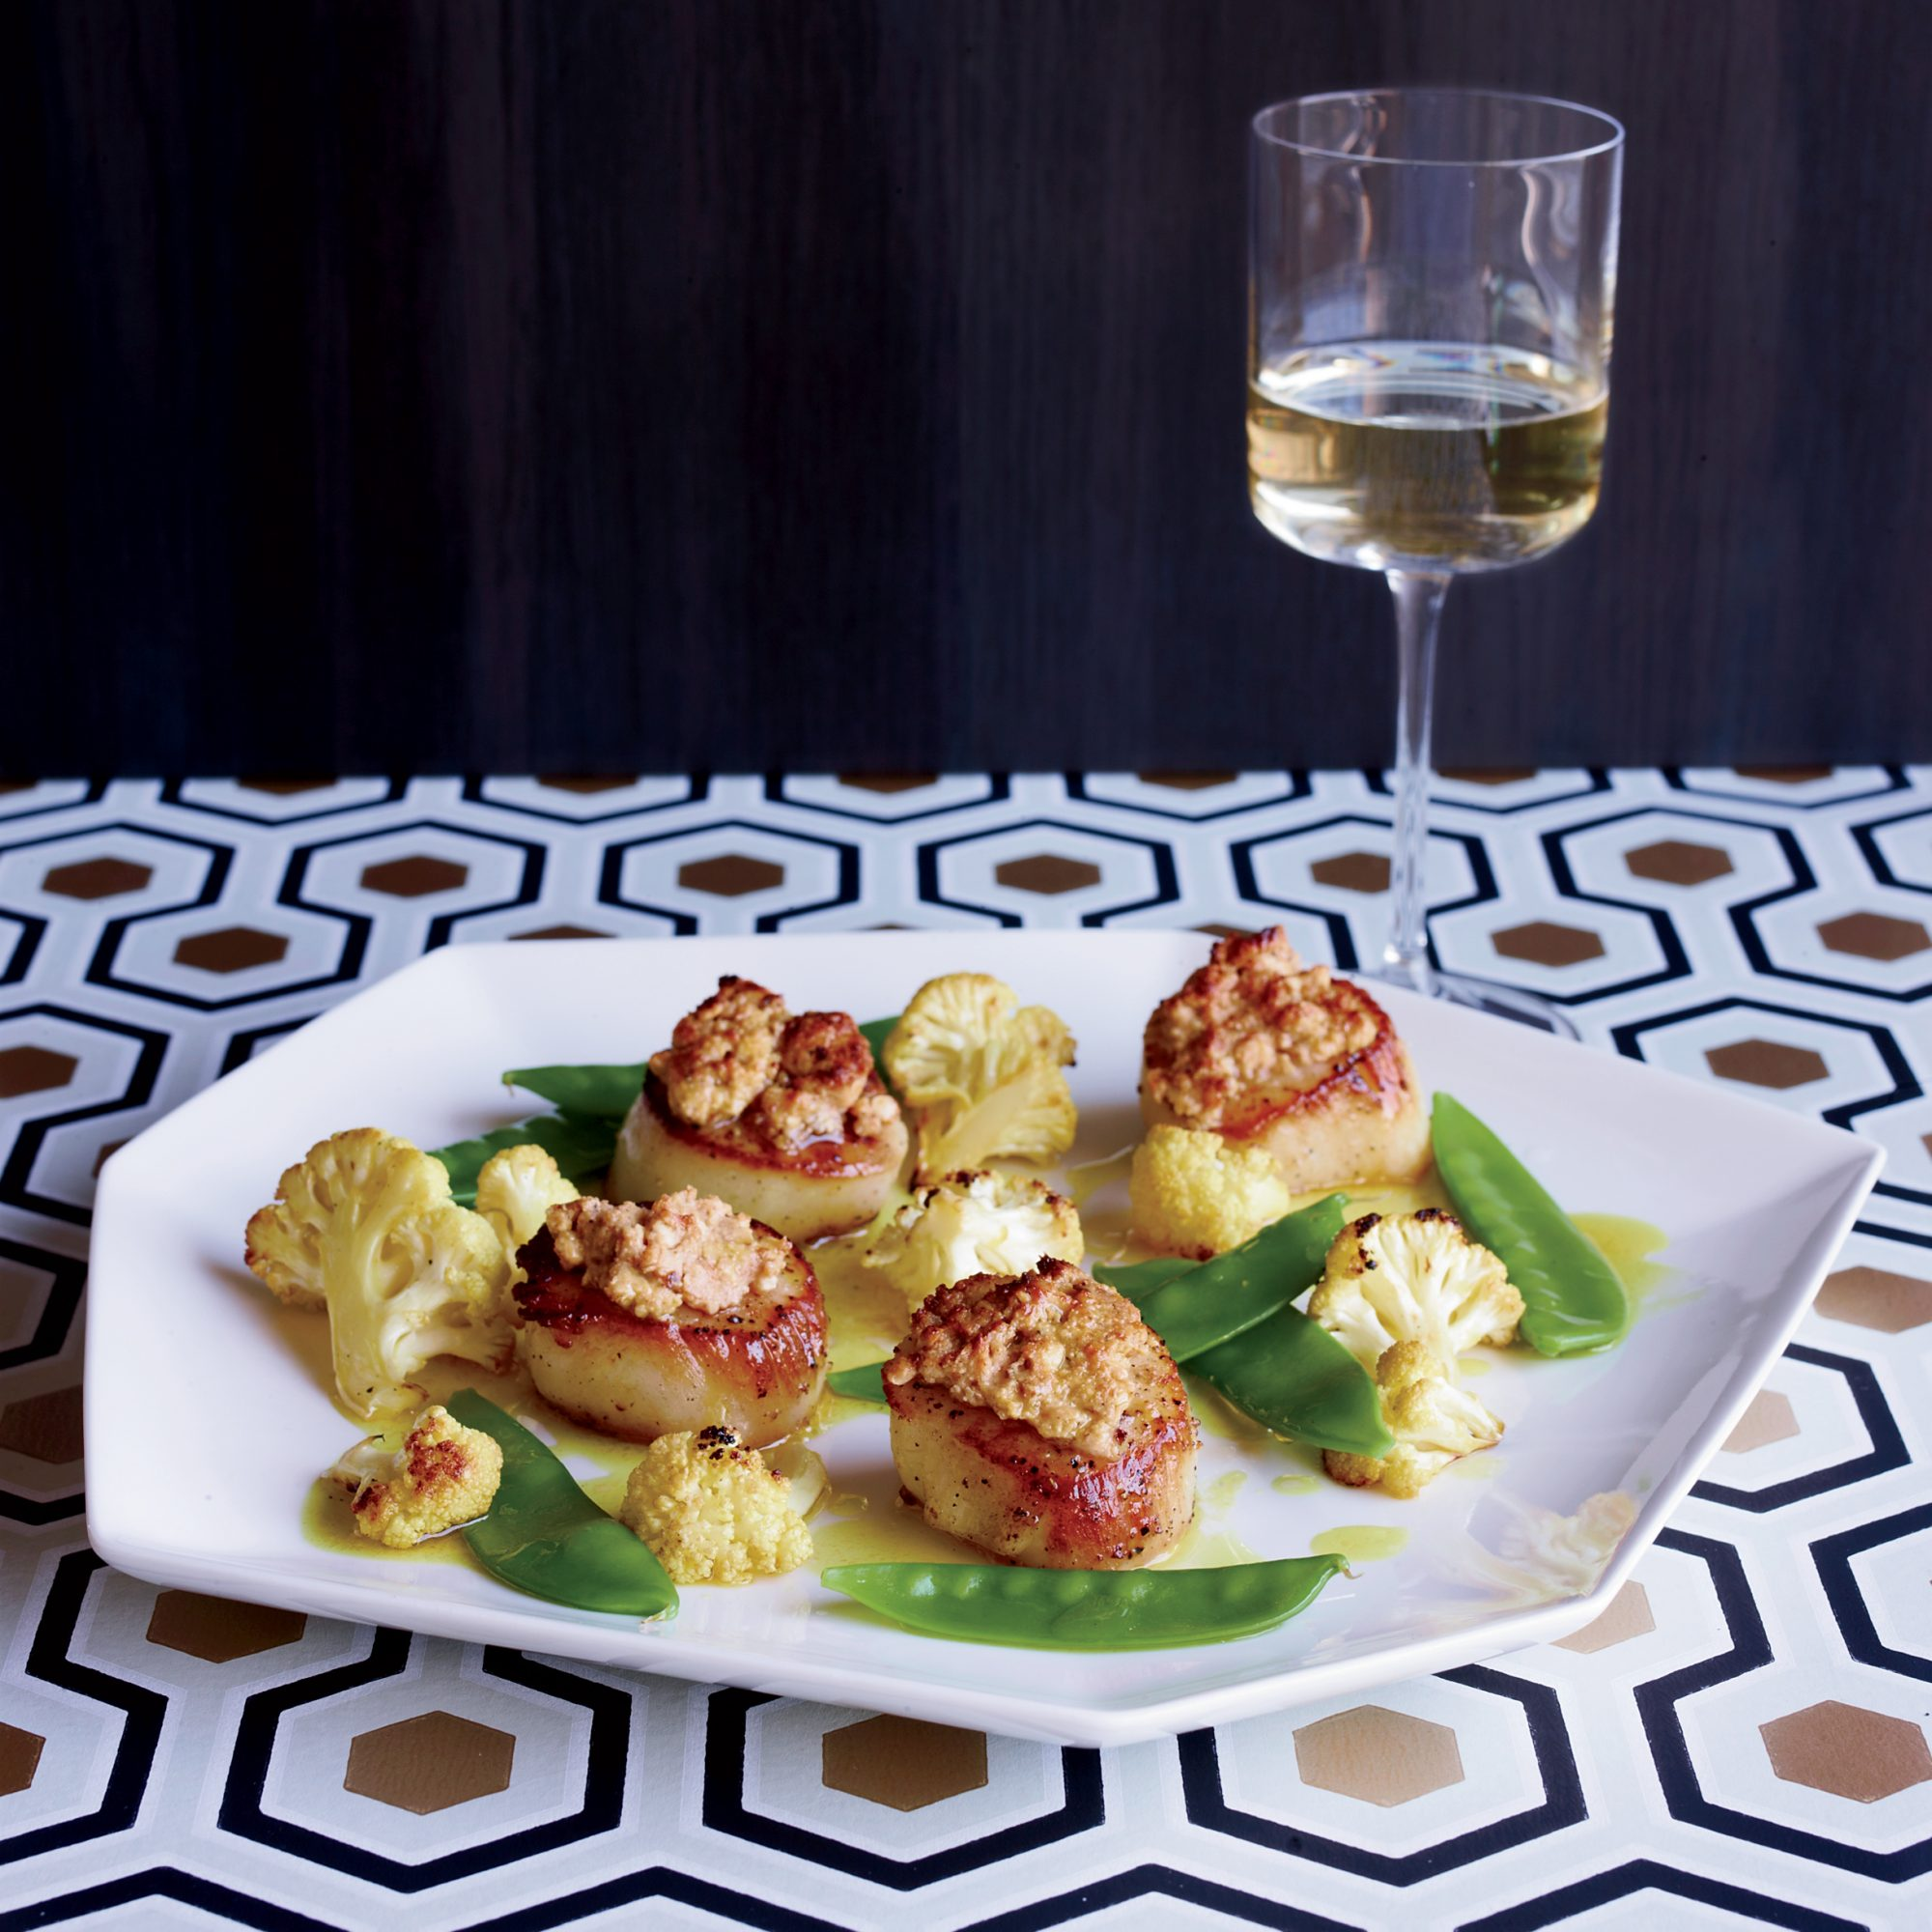 images-sys-201201-r-scallops-with-snow-peas-cauliflower-and-peanut-panade.jpg